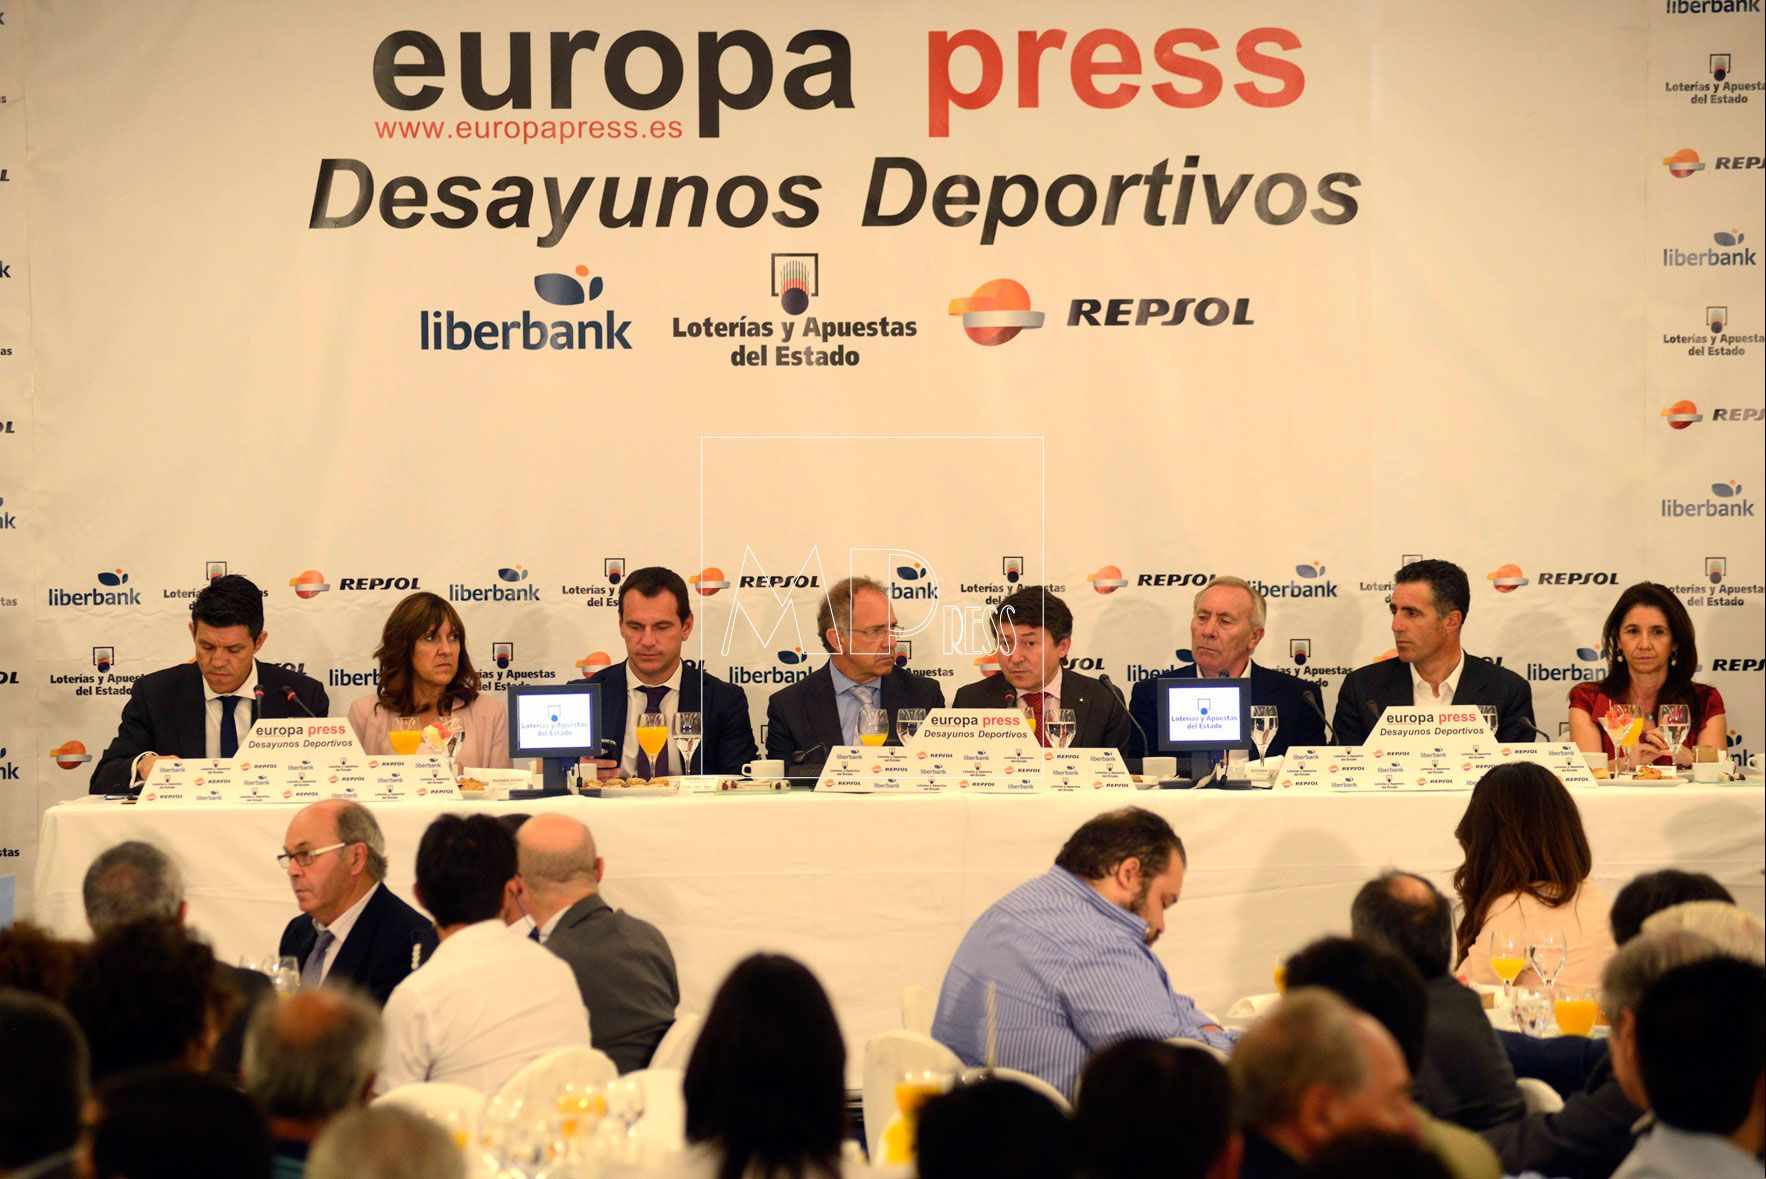 desayunos europa press Miguel Indurain